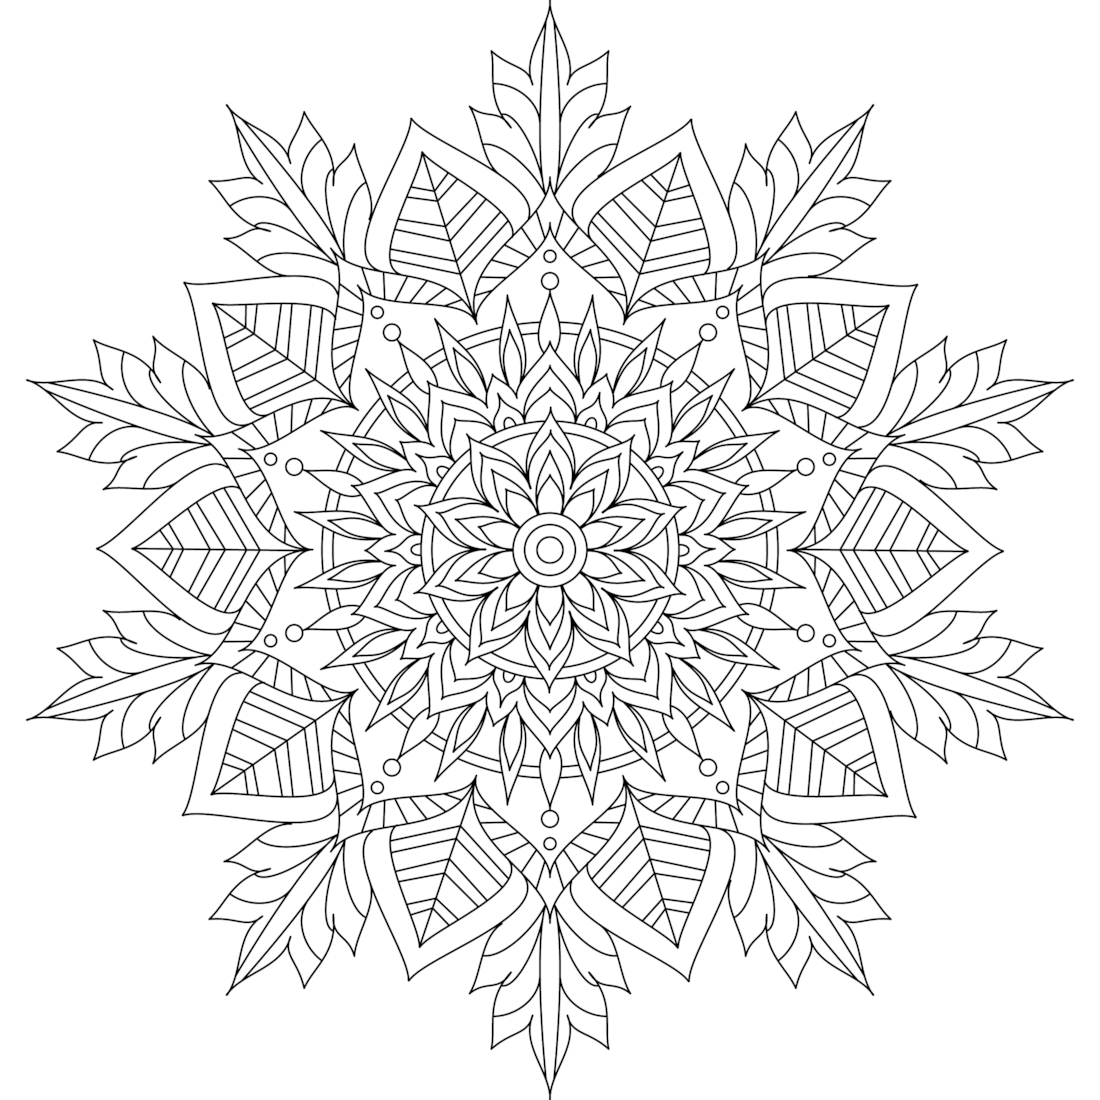 This Is Winter Soul One Of Over 100 Printable Mandalas For You To Color Https Mondaymandala Com M Winter Soul Mandala Kleurplaten Kleurplaten Kleurboek